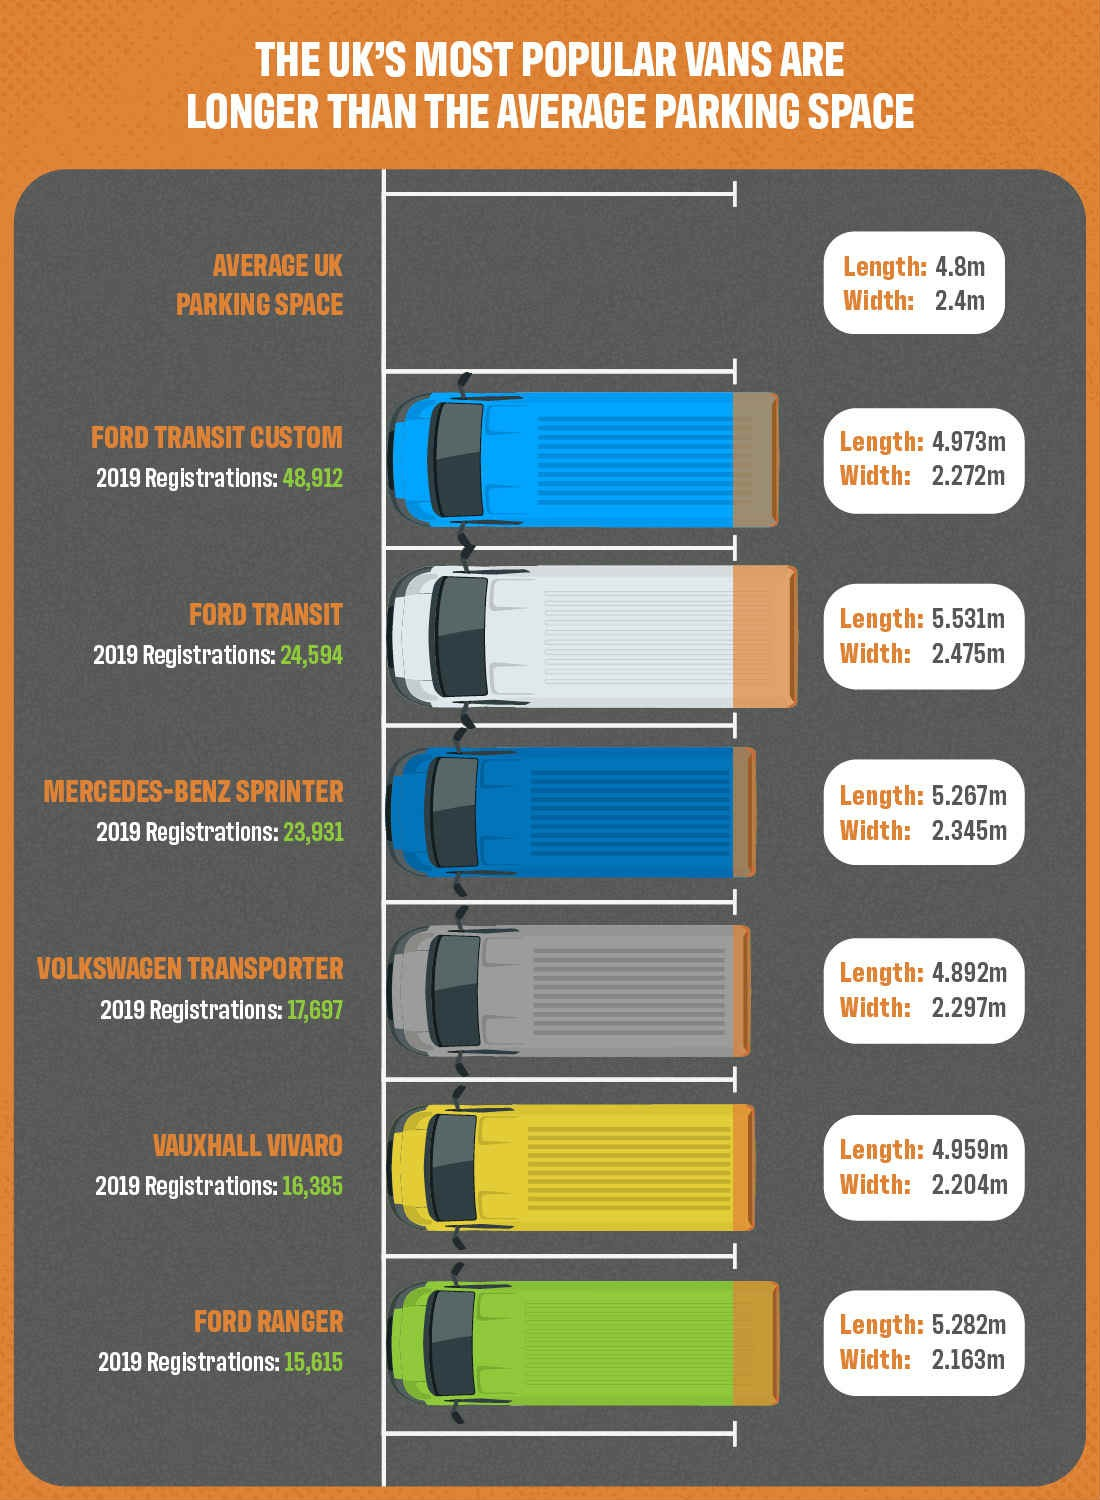 Graphic showing lengths of popular vans vs average parking space